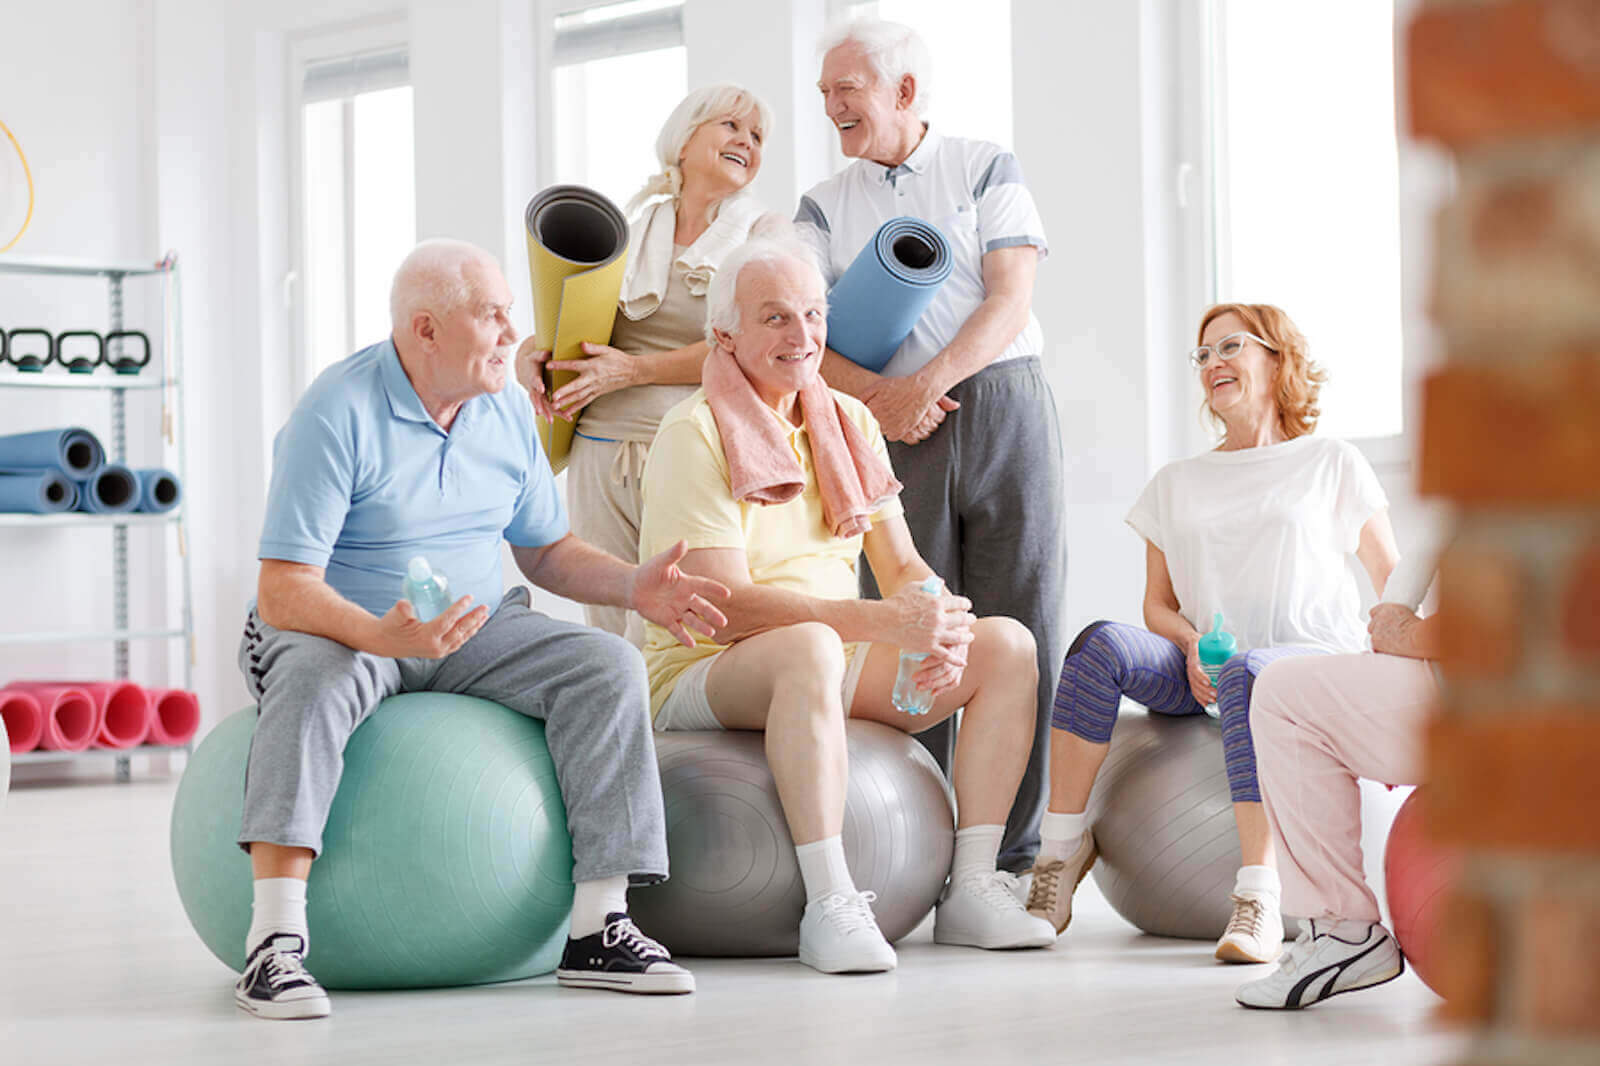 A group of seniors enjoying exercise together